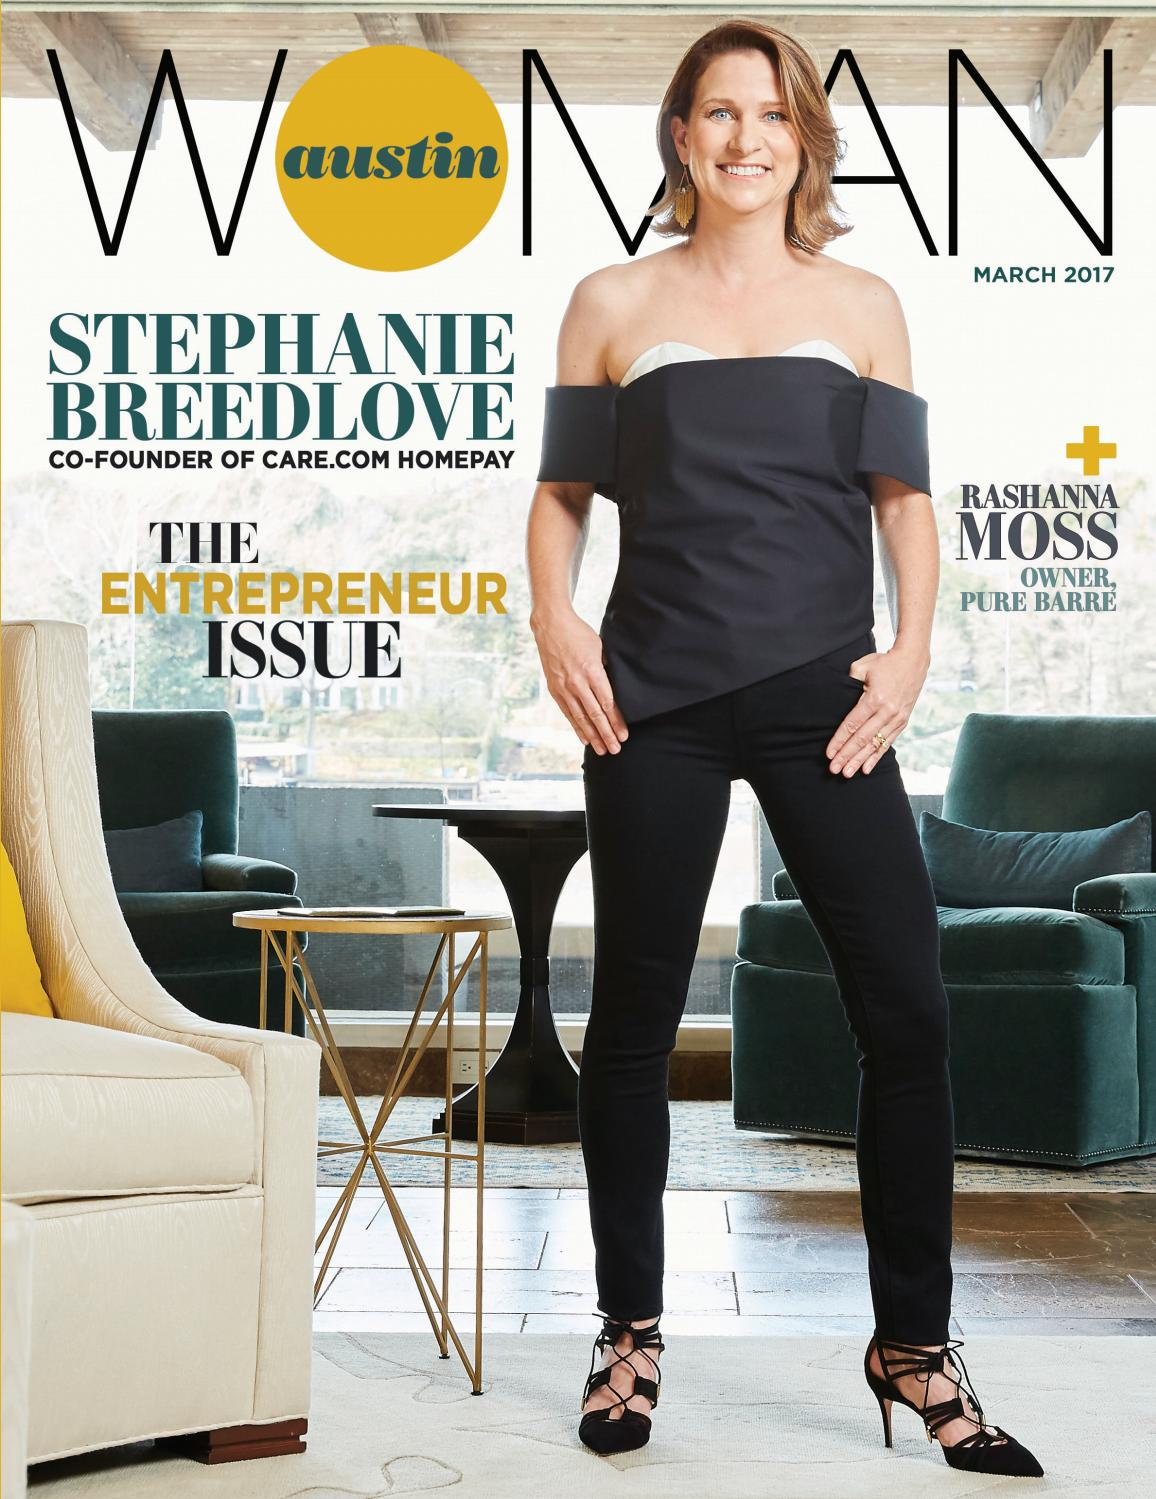 Austin Woman March 2017 by Austin Woman magazine - issuu